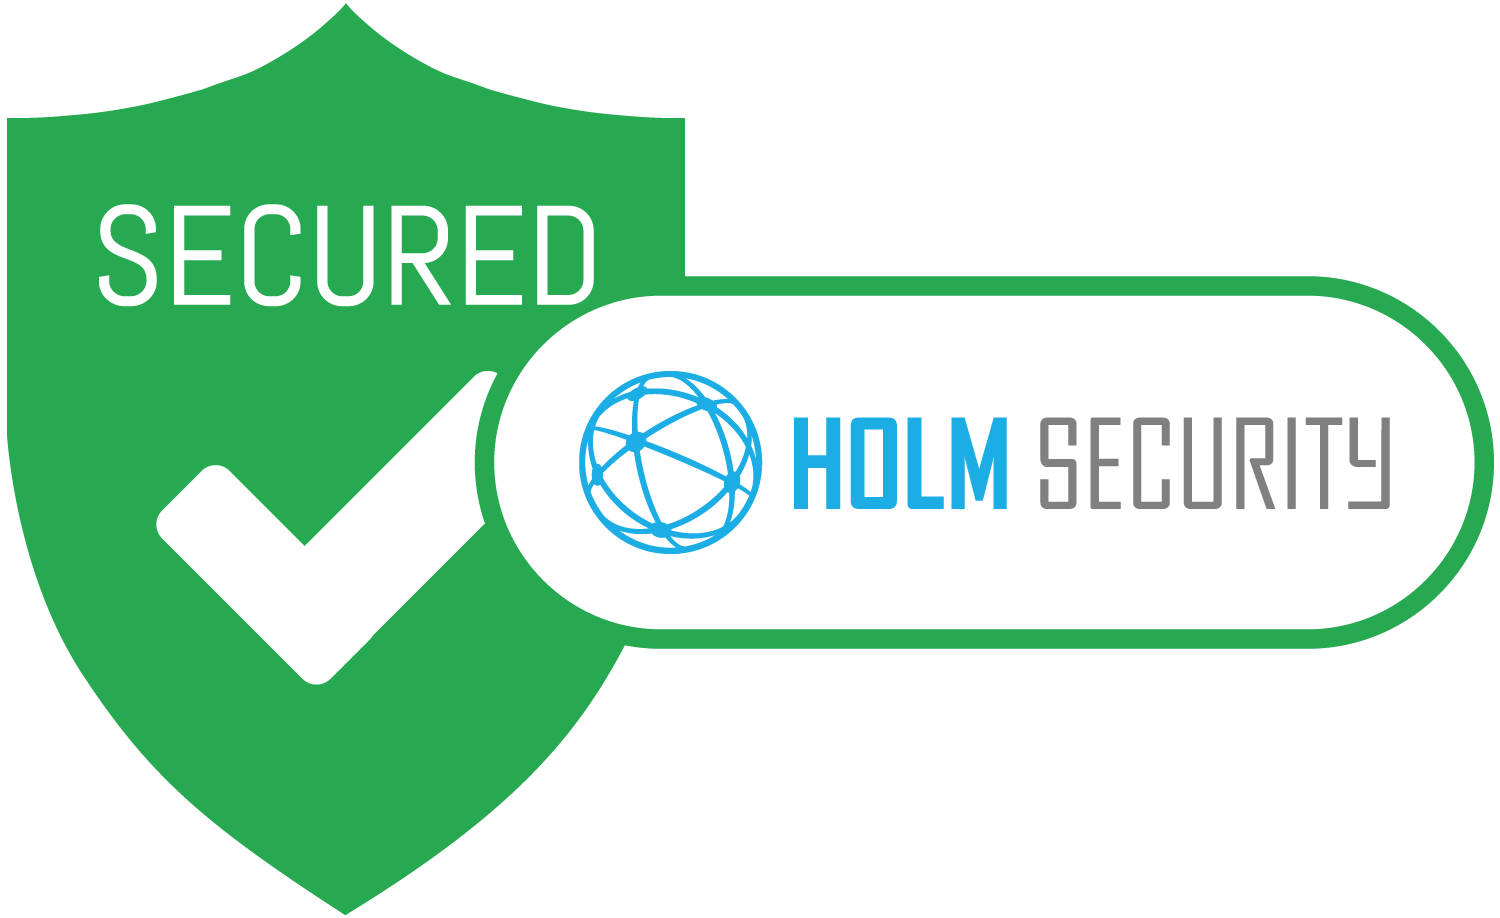 Secured_with_logo.png